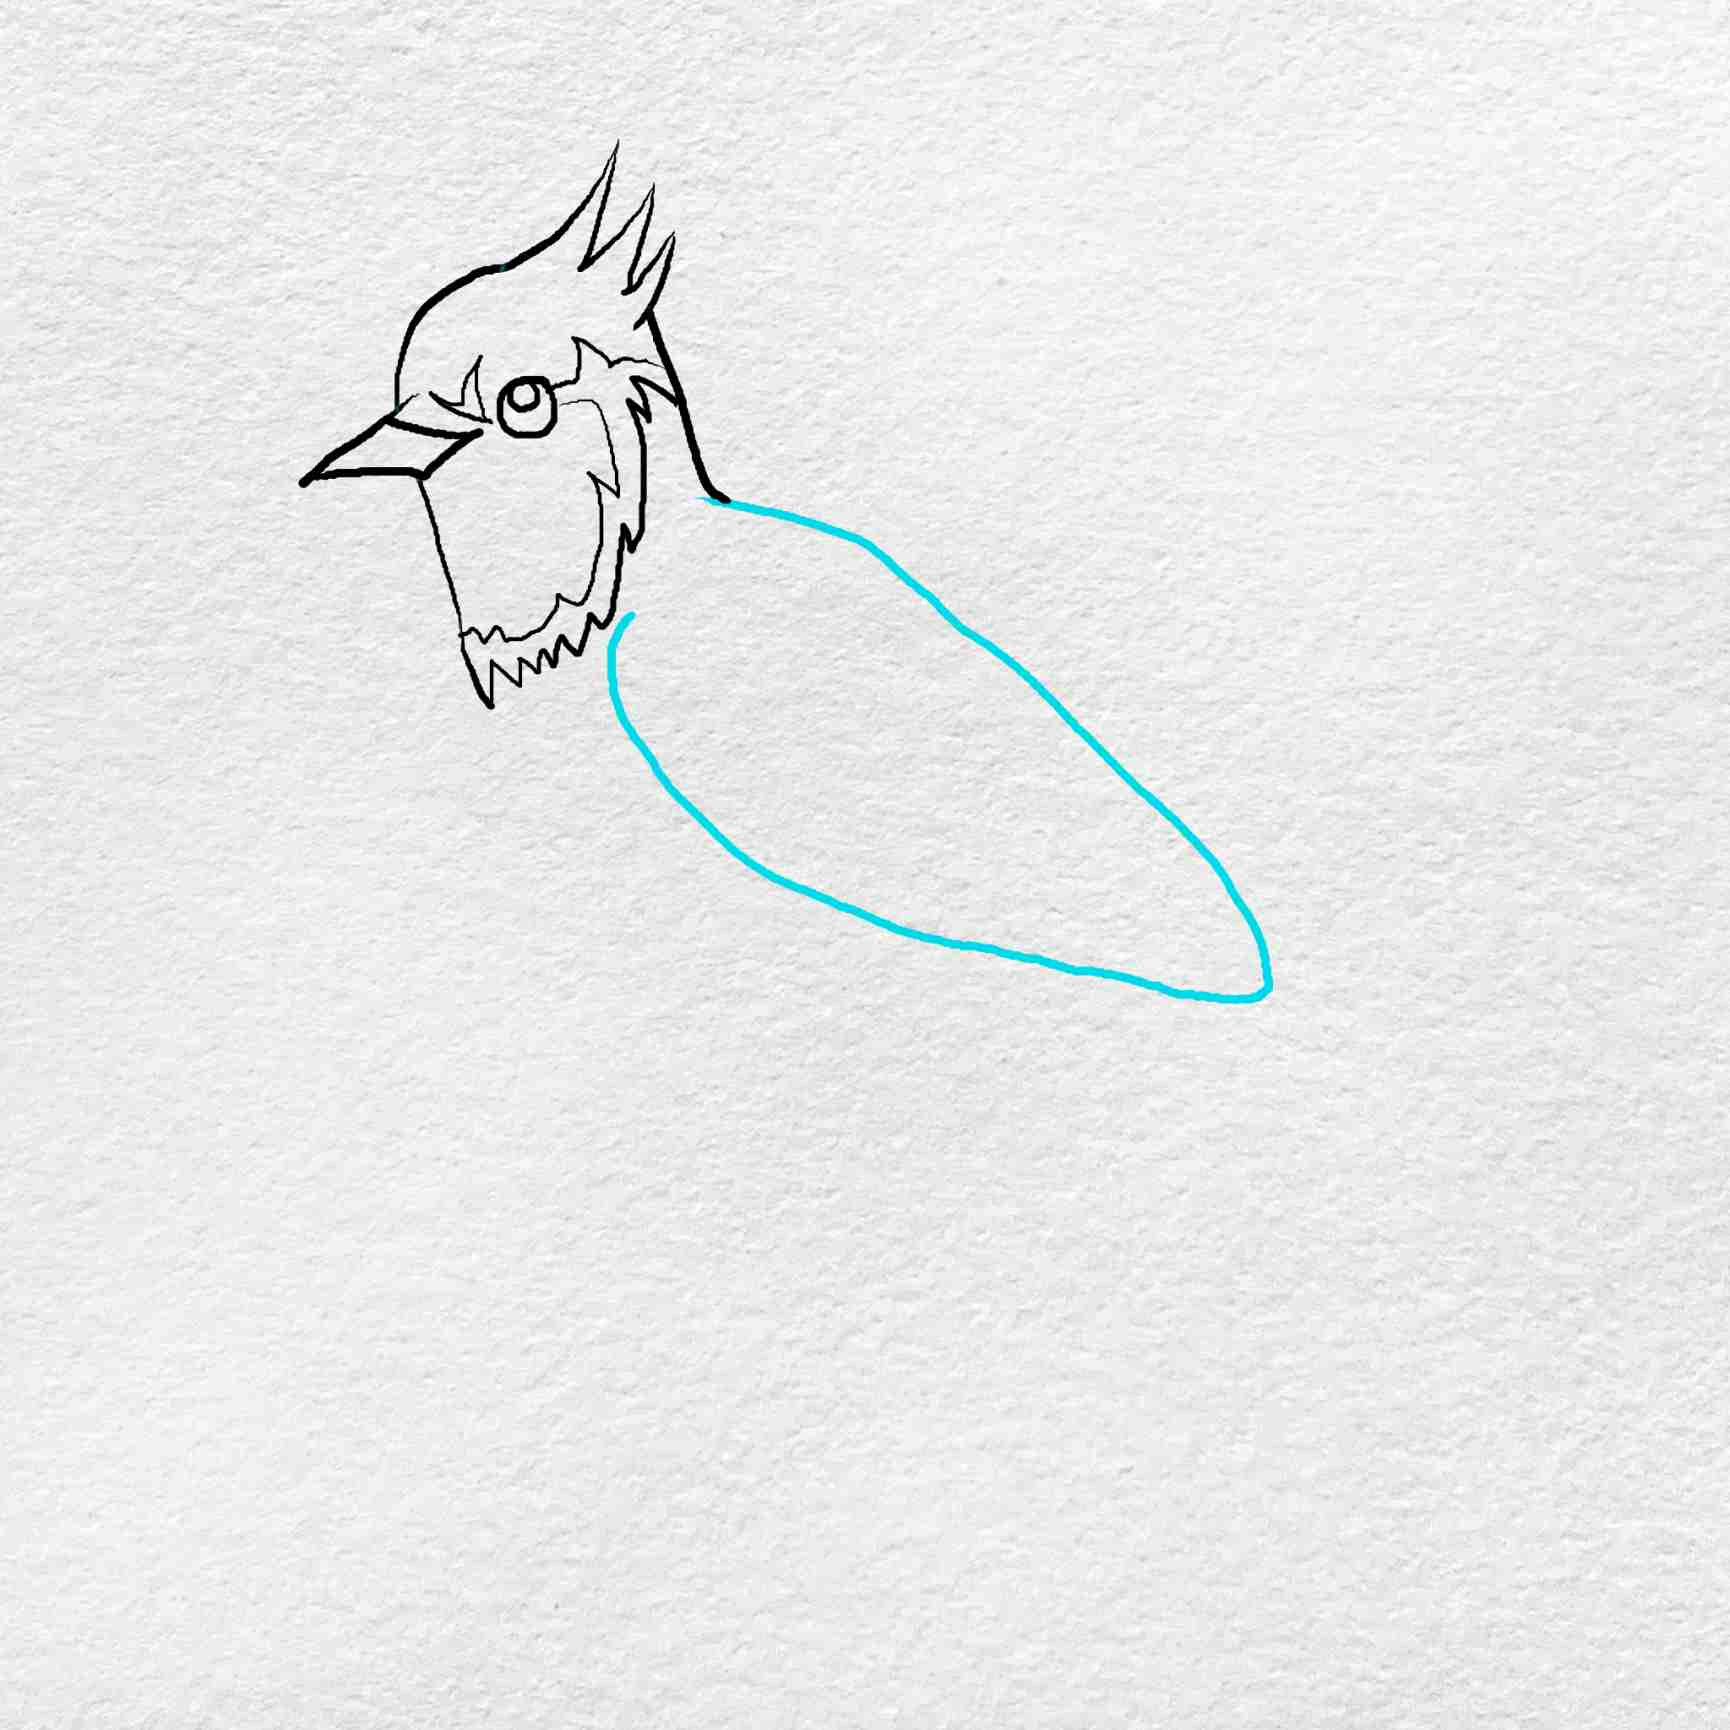 How To Draw A Blue Jay: Step 3